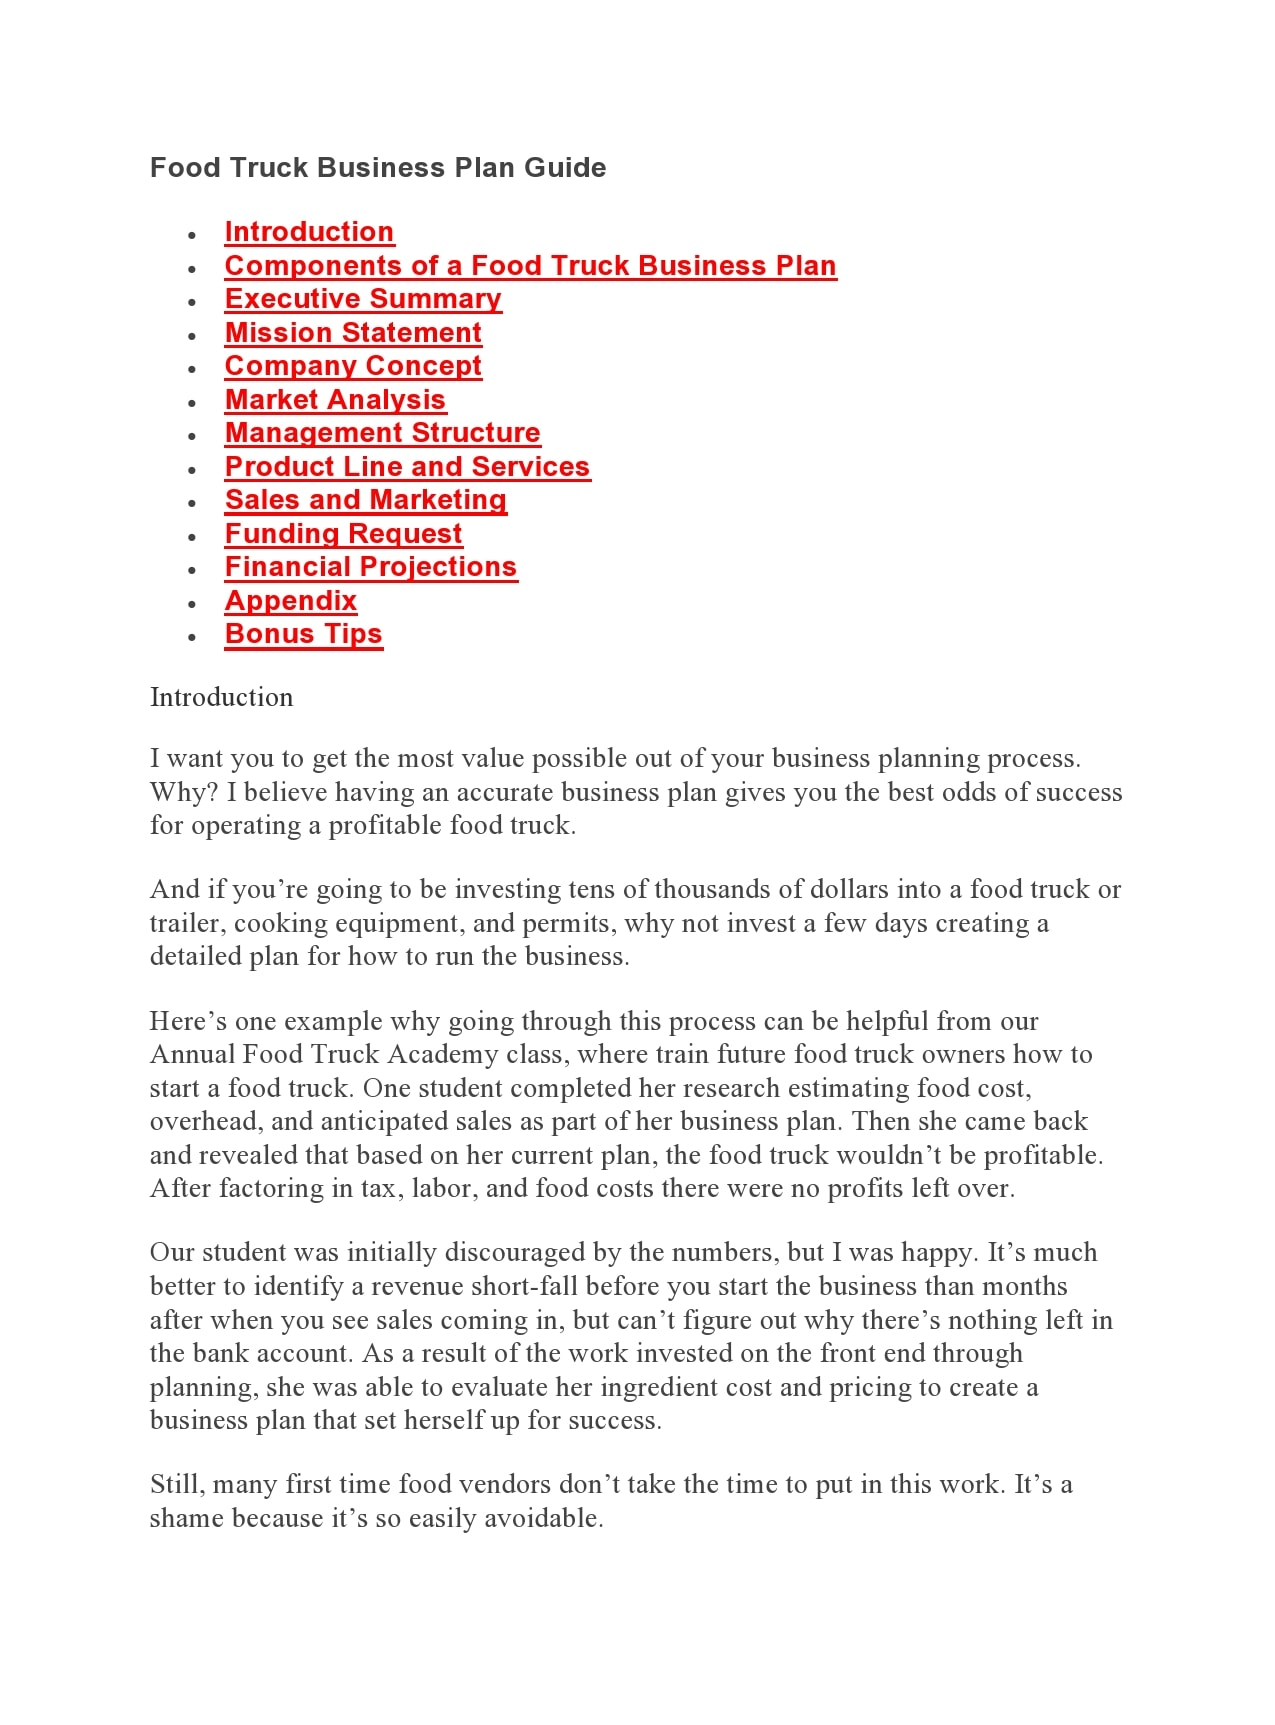 food truck business plan 03